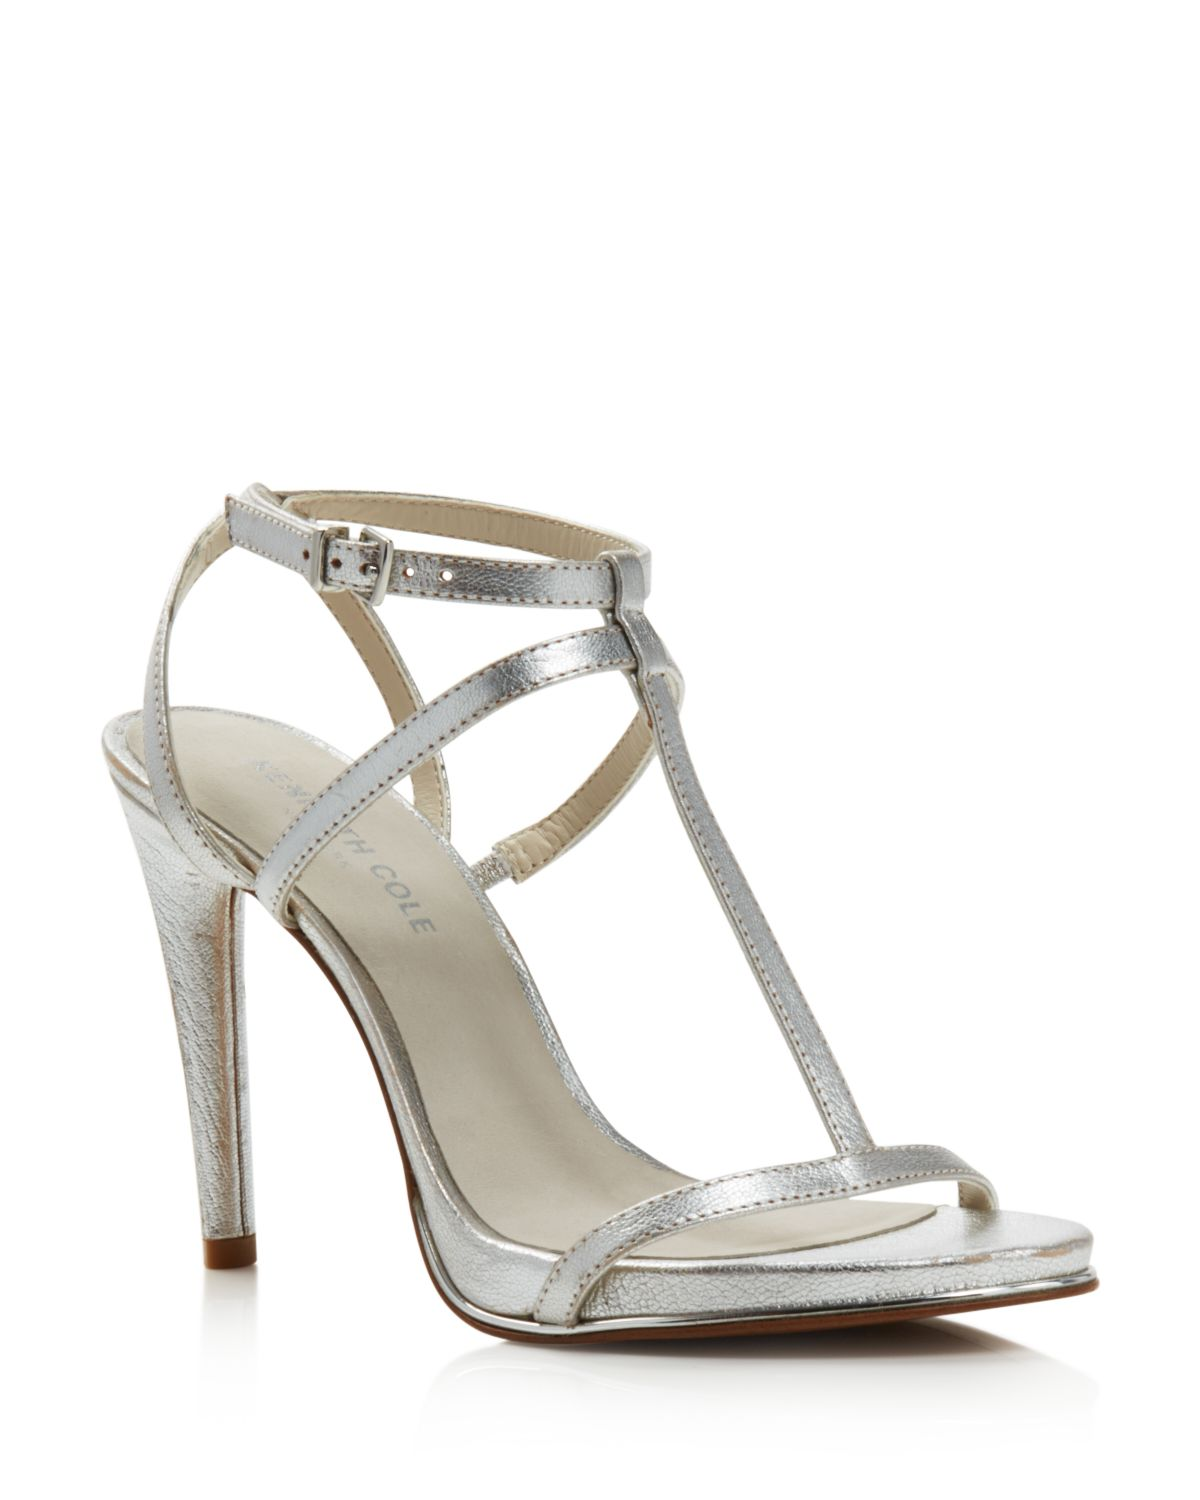 Kenneth Cole Women's Bellamy Leather High-Heel T-Strap Sandals